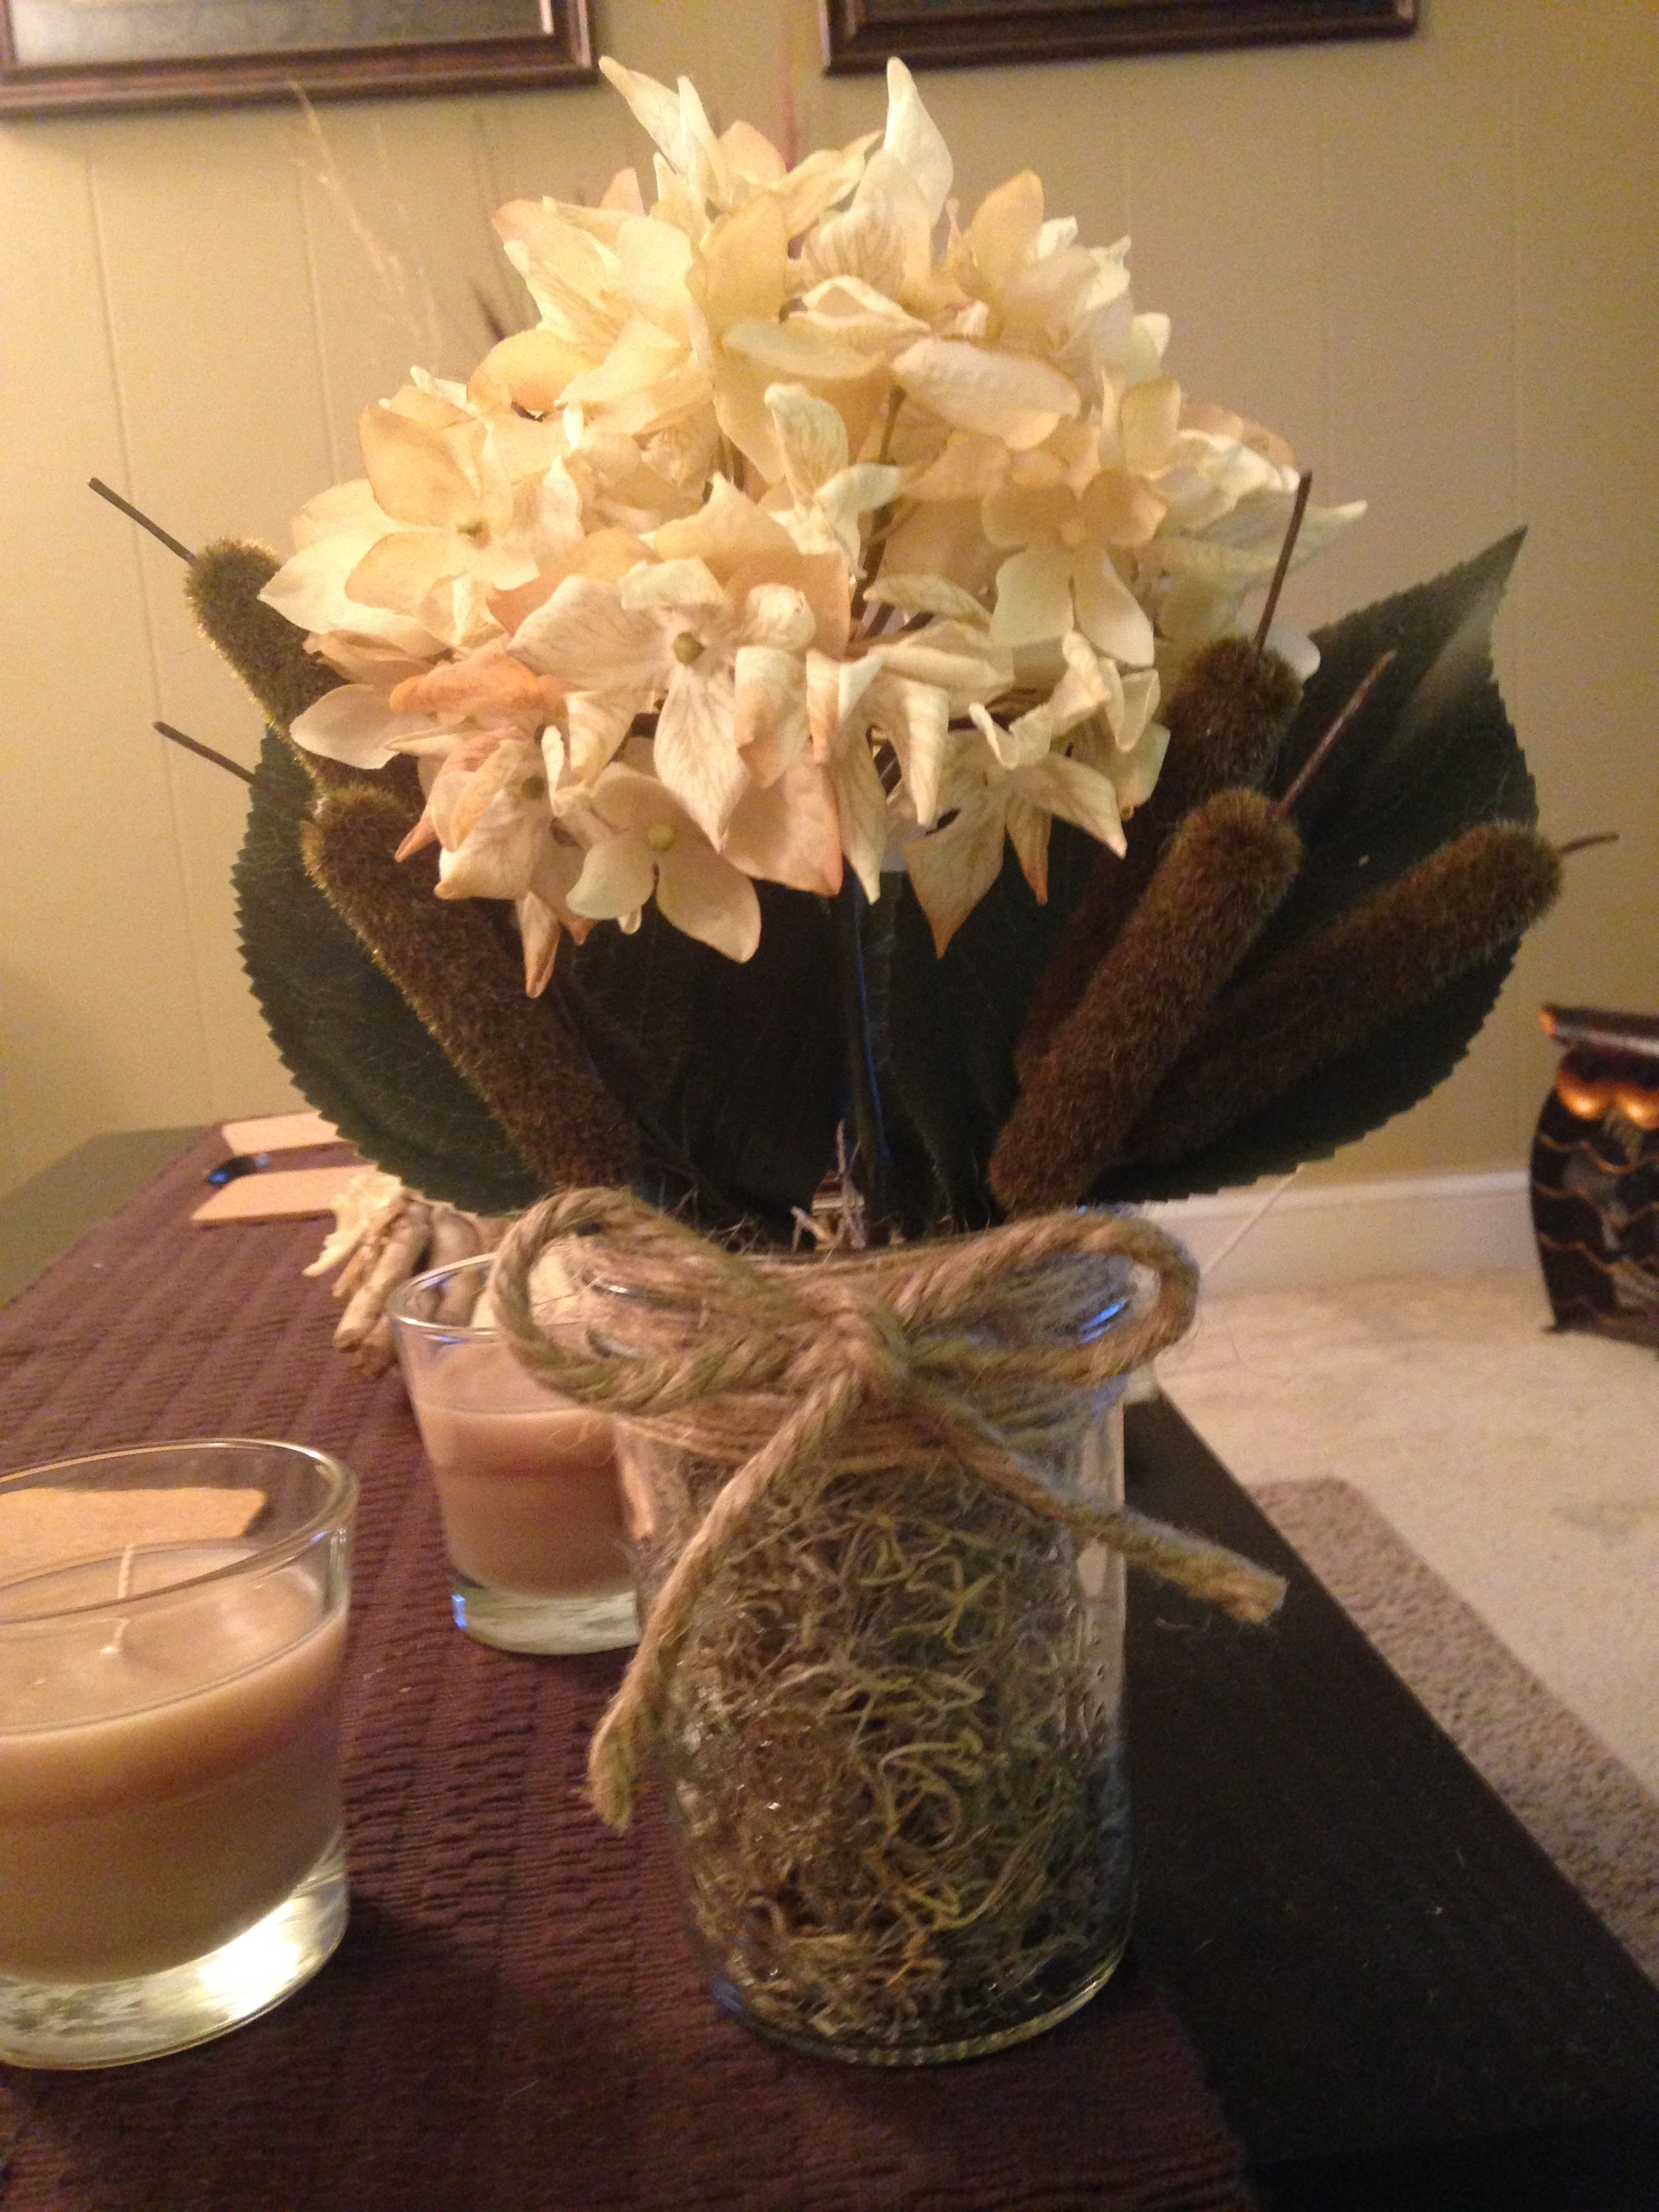 i made this with an old mason jar that i filled with spanish moss